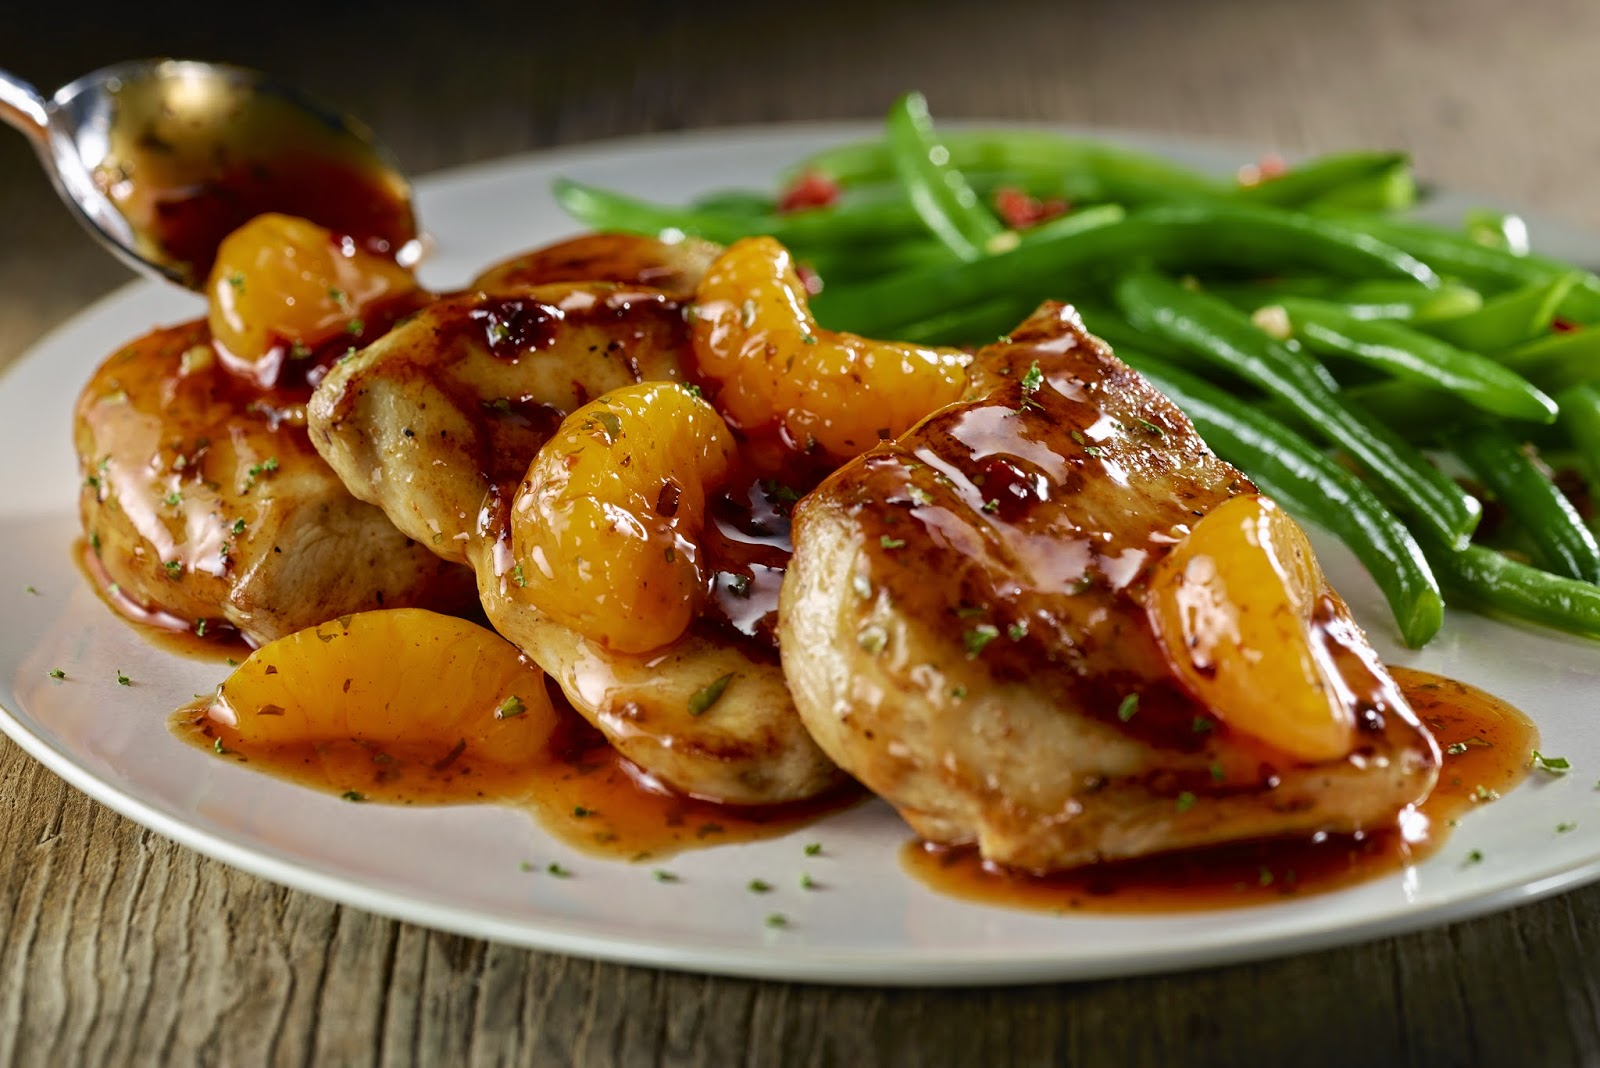 Chipotle Orange Chicken : Grilled chicken breasts in a spicy chipotle ...